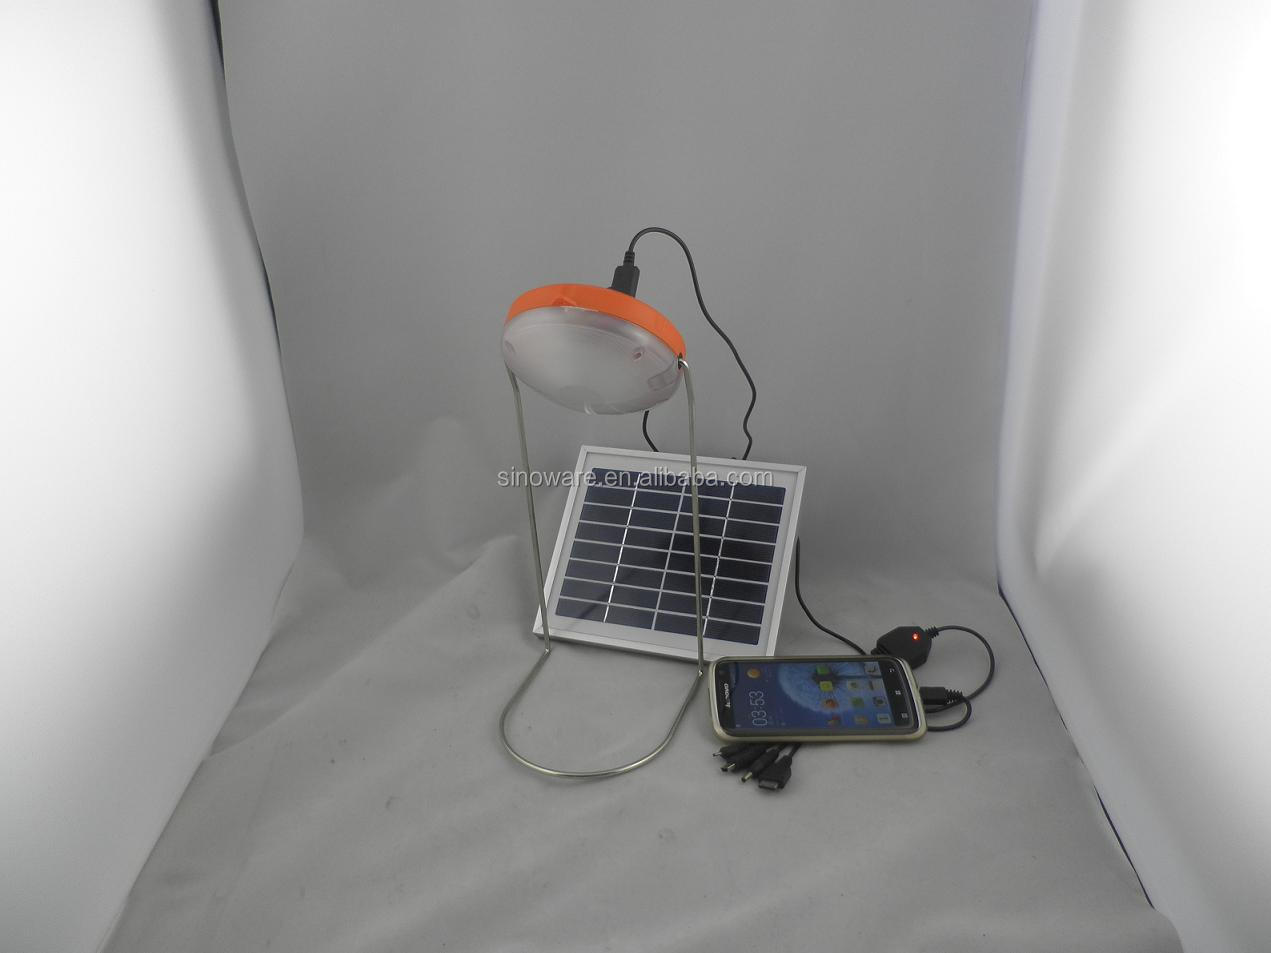 Portable Solar Reading Lamp/Solar Desk Lamp with USB mobile chargers,More than 270LM